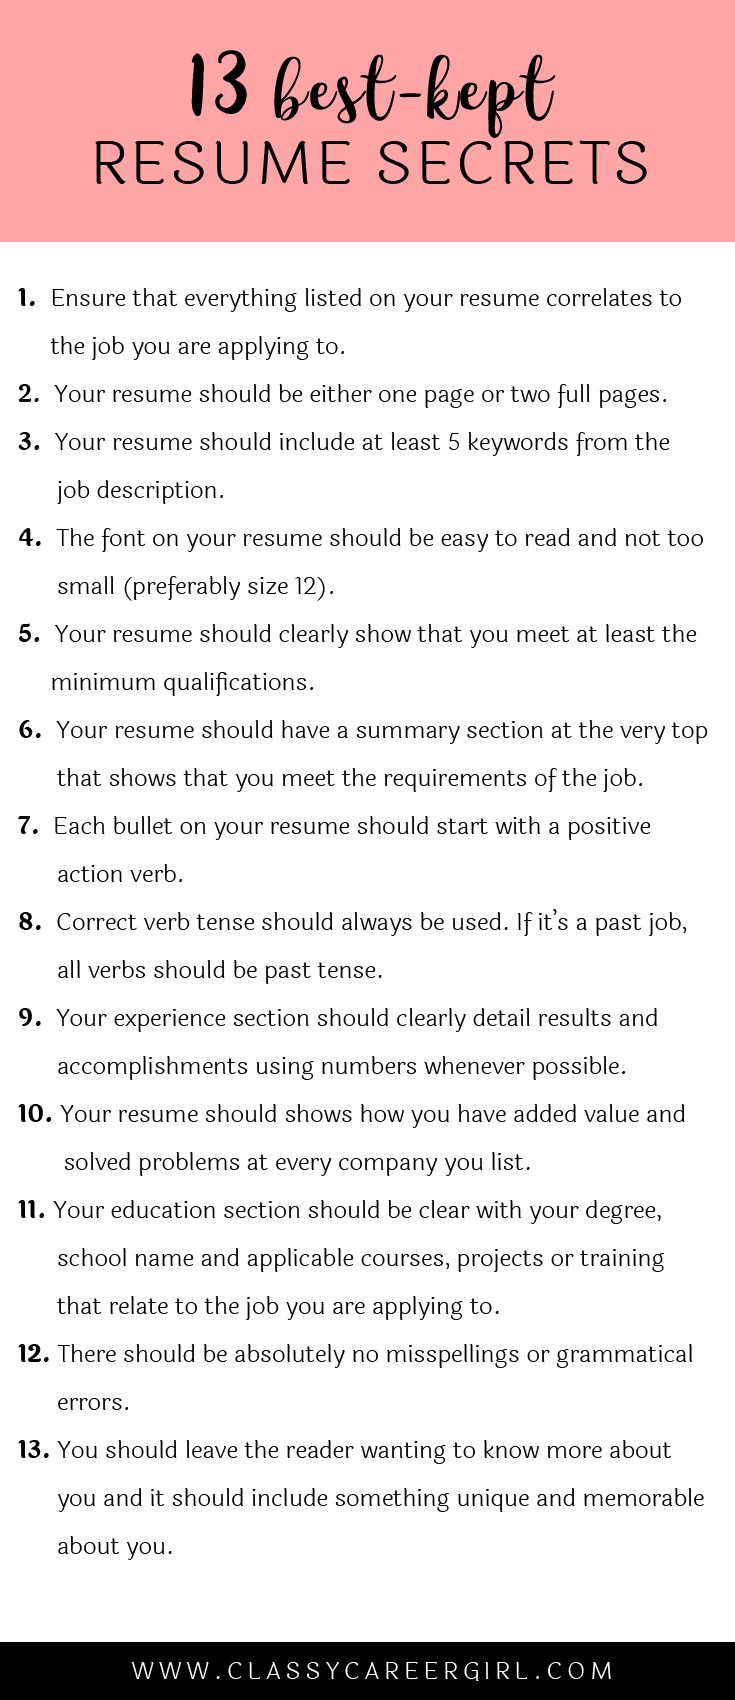 Opposenewapstandardsus  Pleasing  Ideas About Resume On Pinterest  Cv Format Resume Cv And  With Foxy Some Hiring Managers Will Toss Your Resume Out If You Dont Know These  With Beauteous Freelance Writer Resume Also Resume Writing Service Reviews In Addition Professional Resume Example And Resume Strengths As Well As Resume Template Latex Additionally Warehouse Supervisor Resume From Pinterestcom With Opposenewapstandardsus  Foxy  Ideas About Resume On Pinterest  Cv Format Resume Cv And  With Beauteous Some Hiring Managers Will Toss Your Resume Out If You Dont Know These  And Pleasing Freelance Writer Resume Also Resume Writing Service Reviews In Addition Professional Resume Example From Pinterestcom